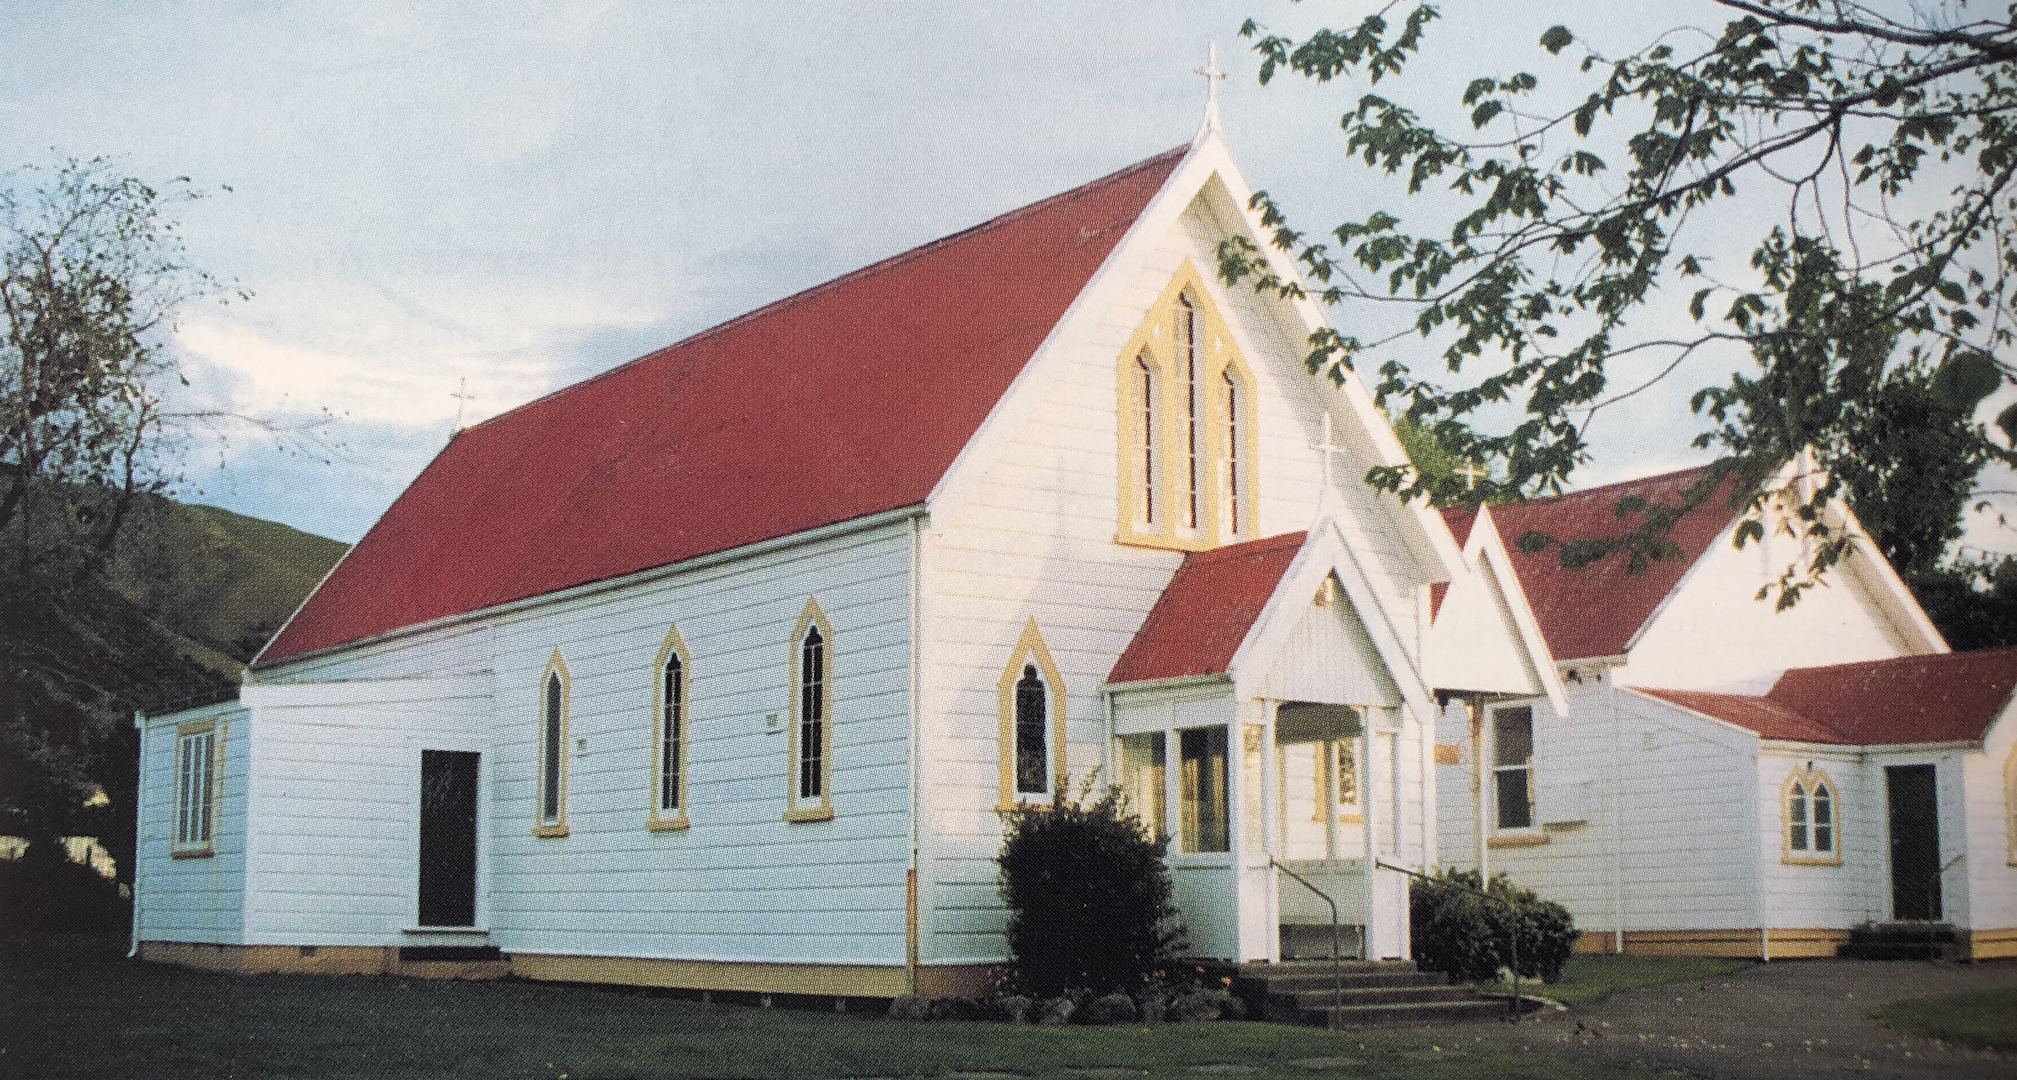 Before it was moved, the Lady Chapel used to be the parish church in Paraparaumu